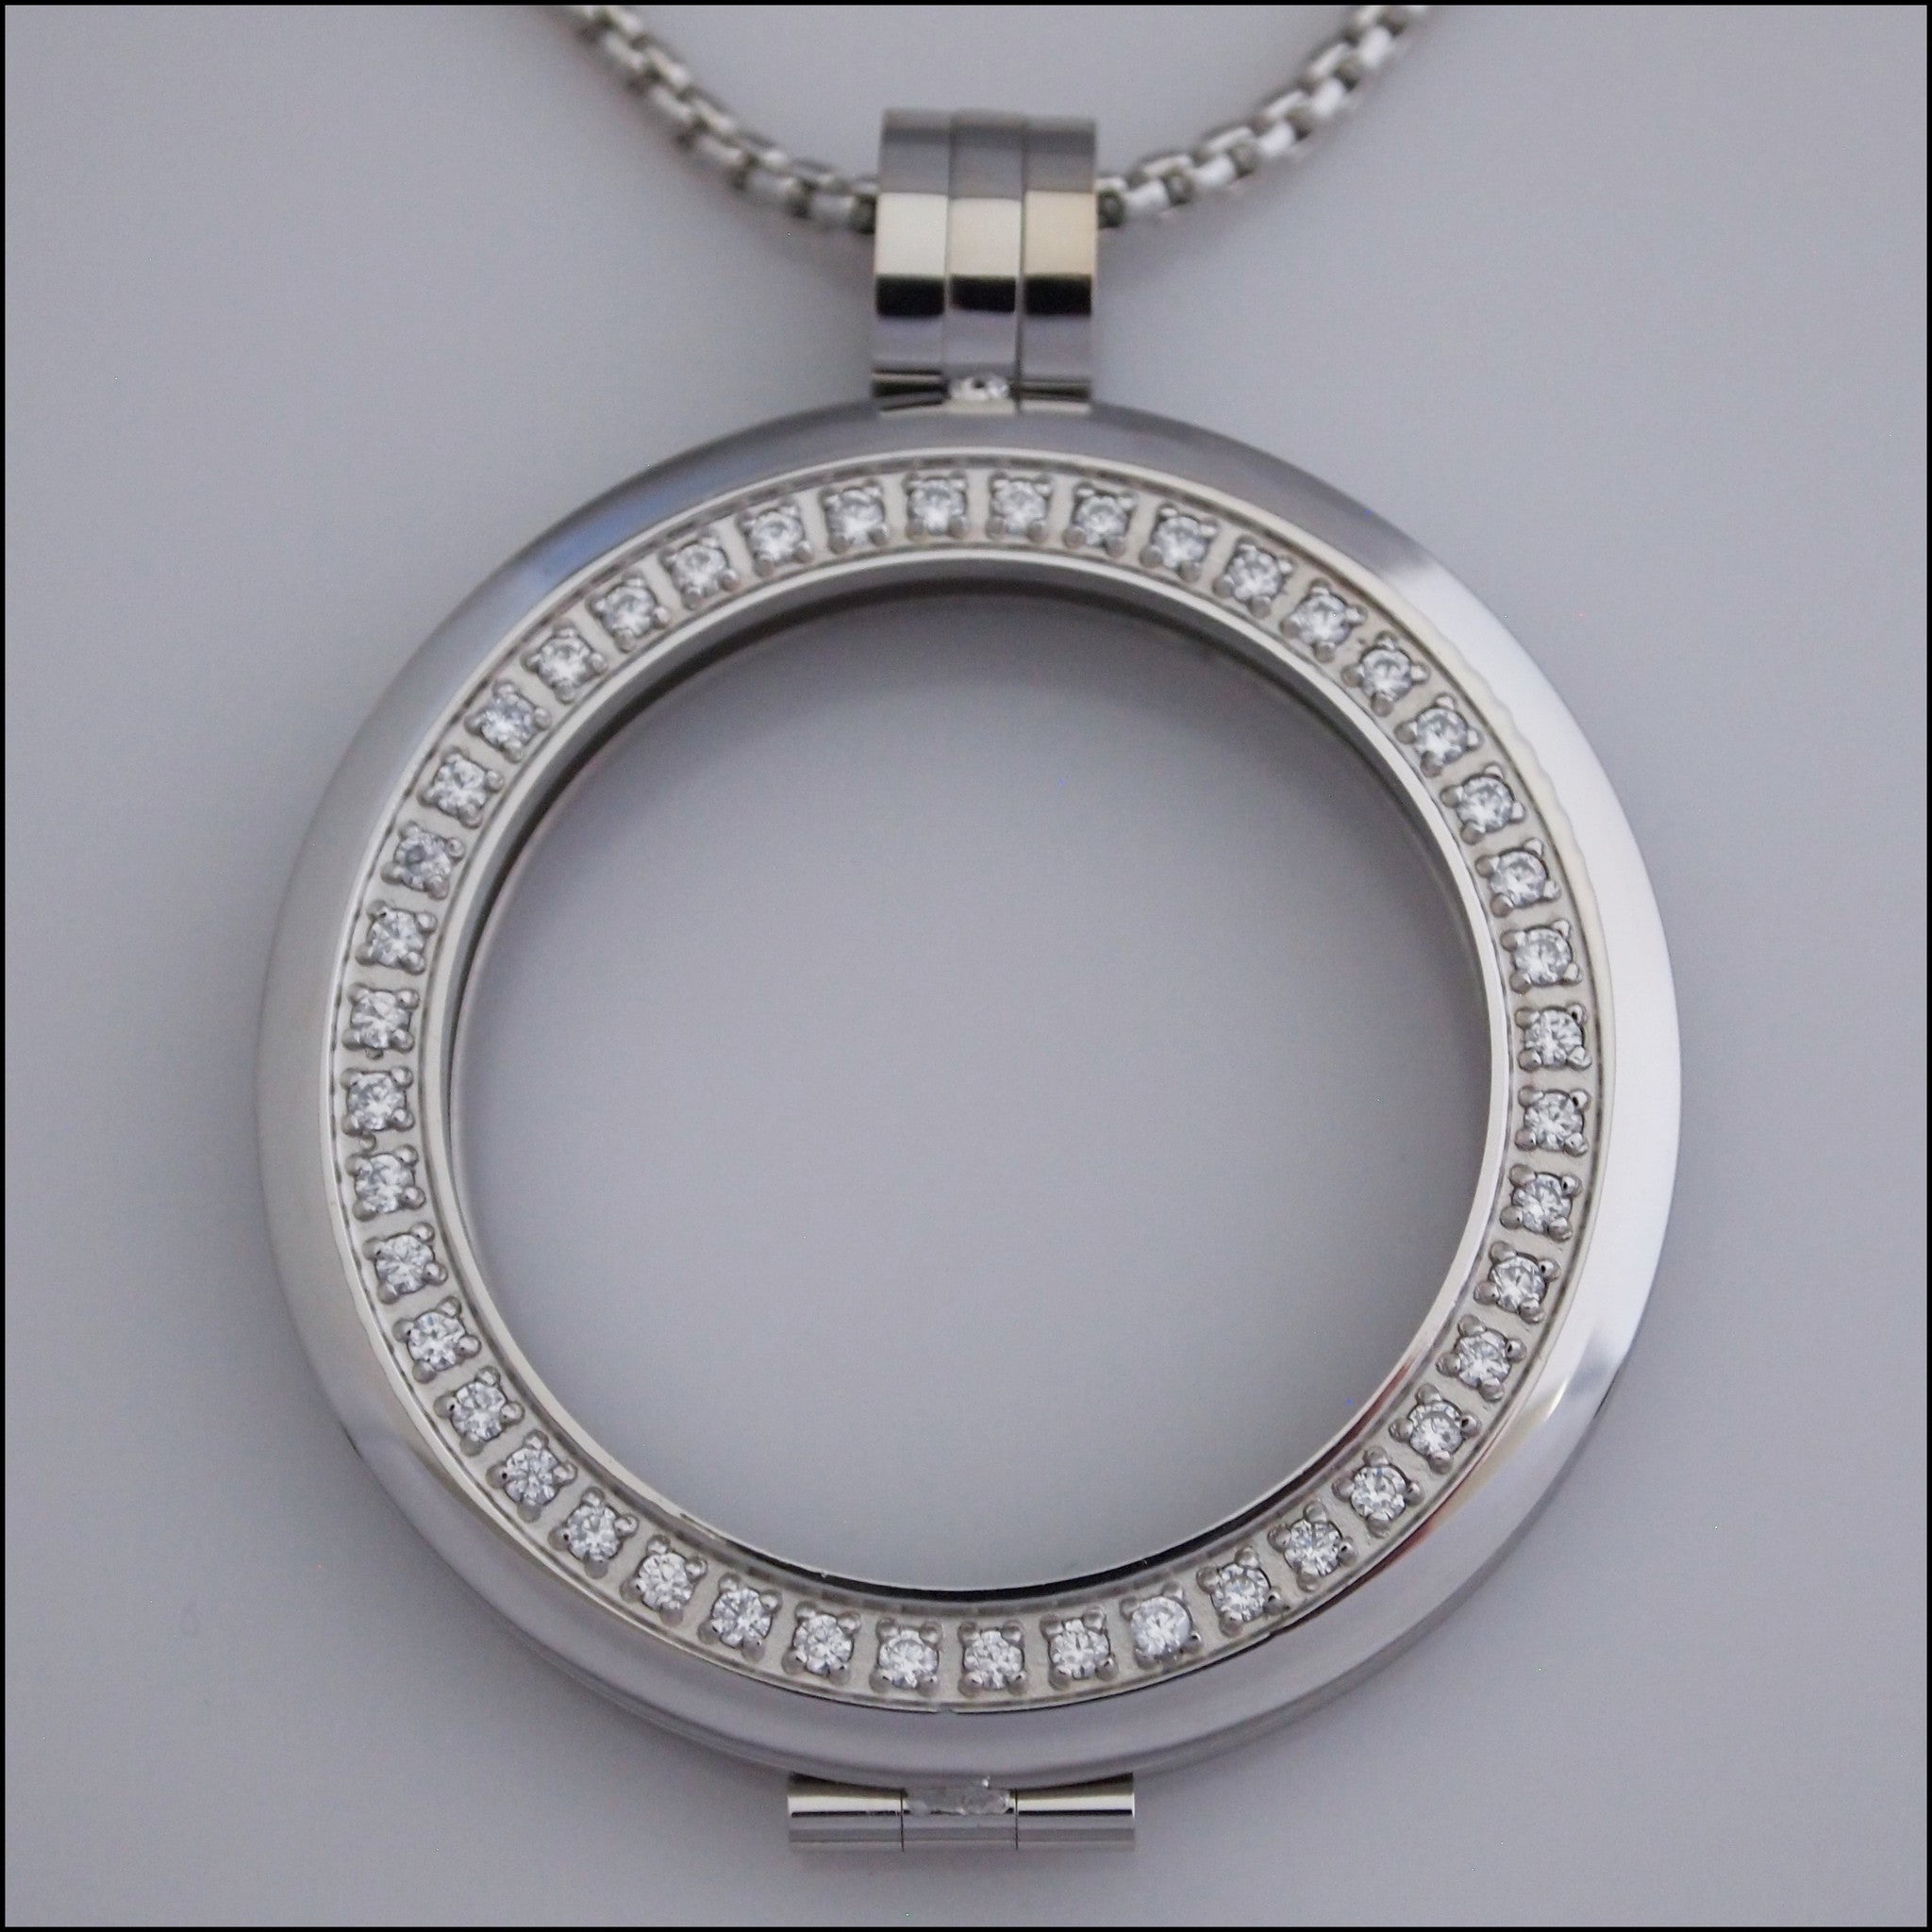 Smooth Surround Crystal Coin Holder Pendant - Silver - Find Something Special